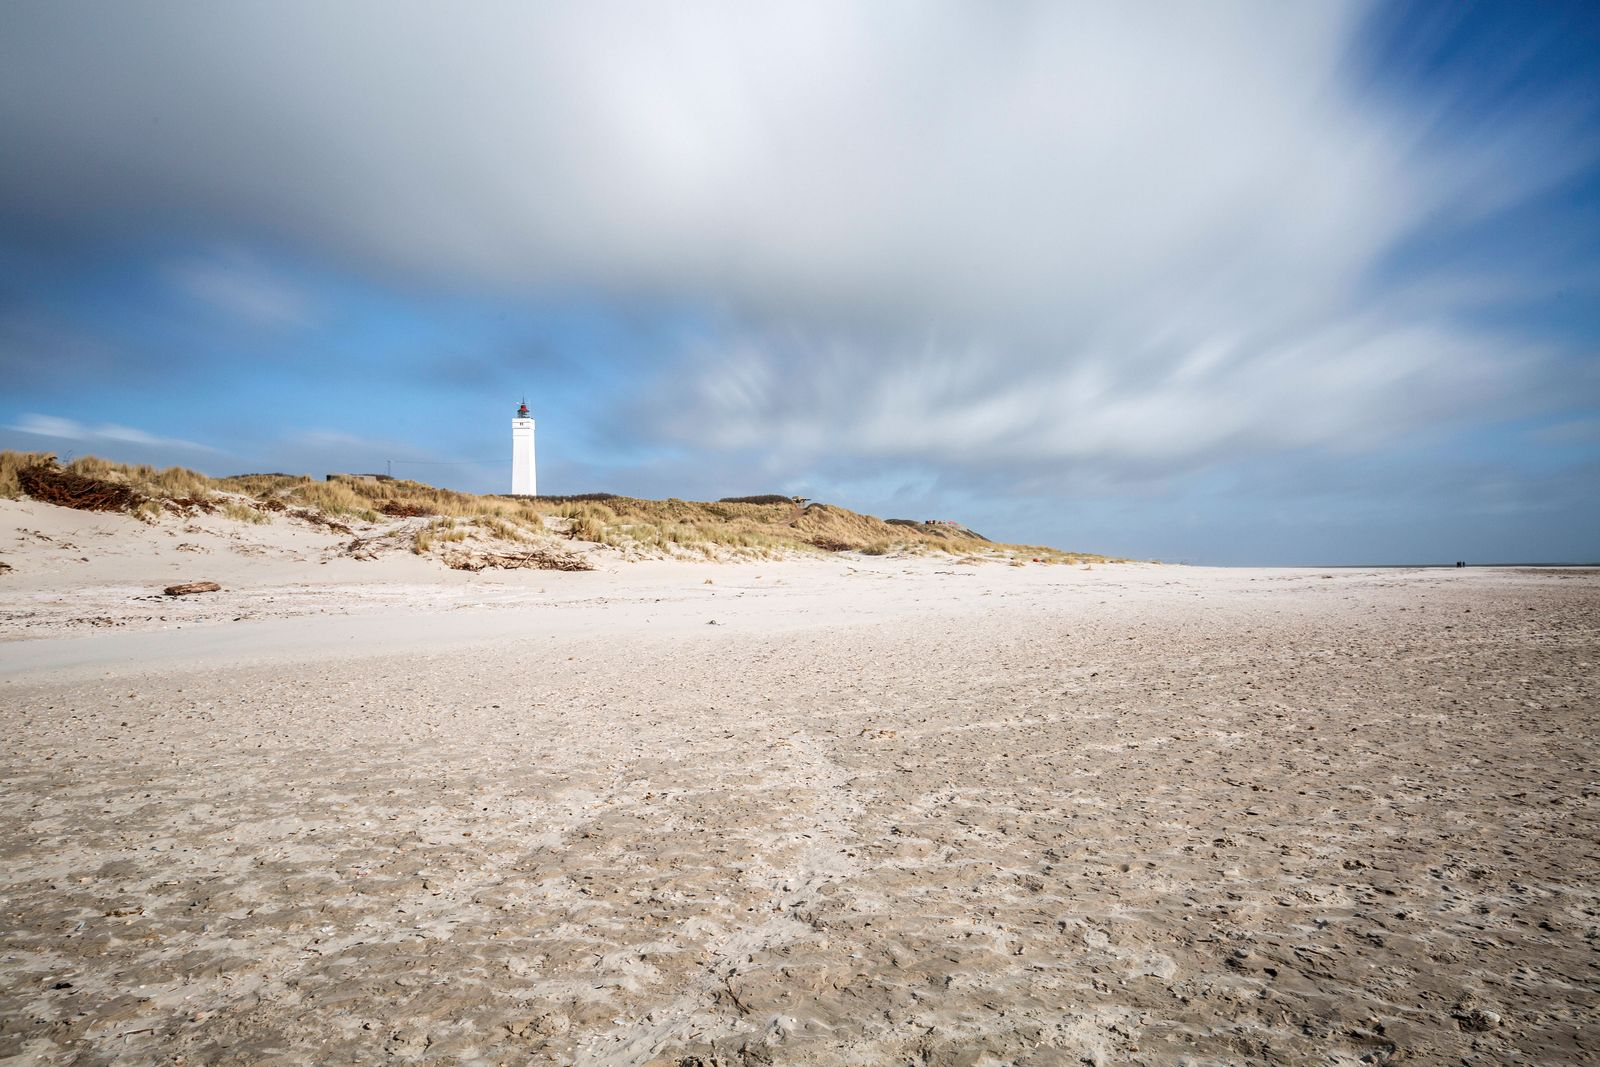 Denmark, Romo, Blavand, Clouds over sandy coastal beach with lighthouse in background ASCF01184